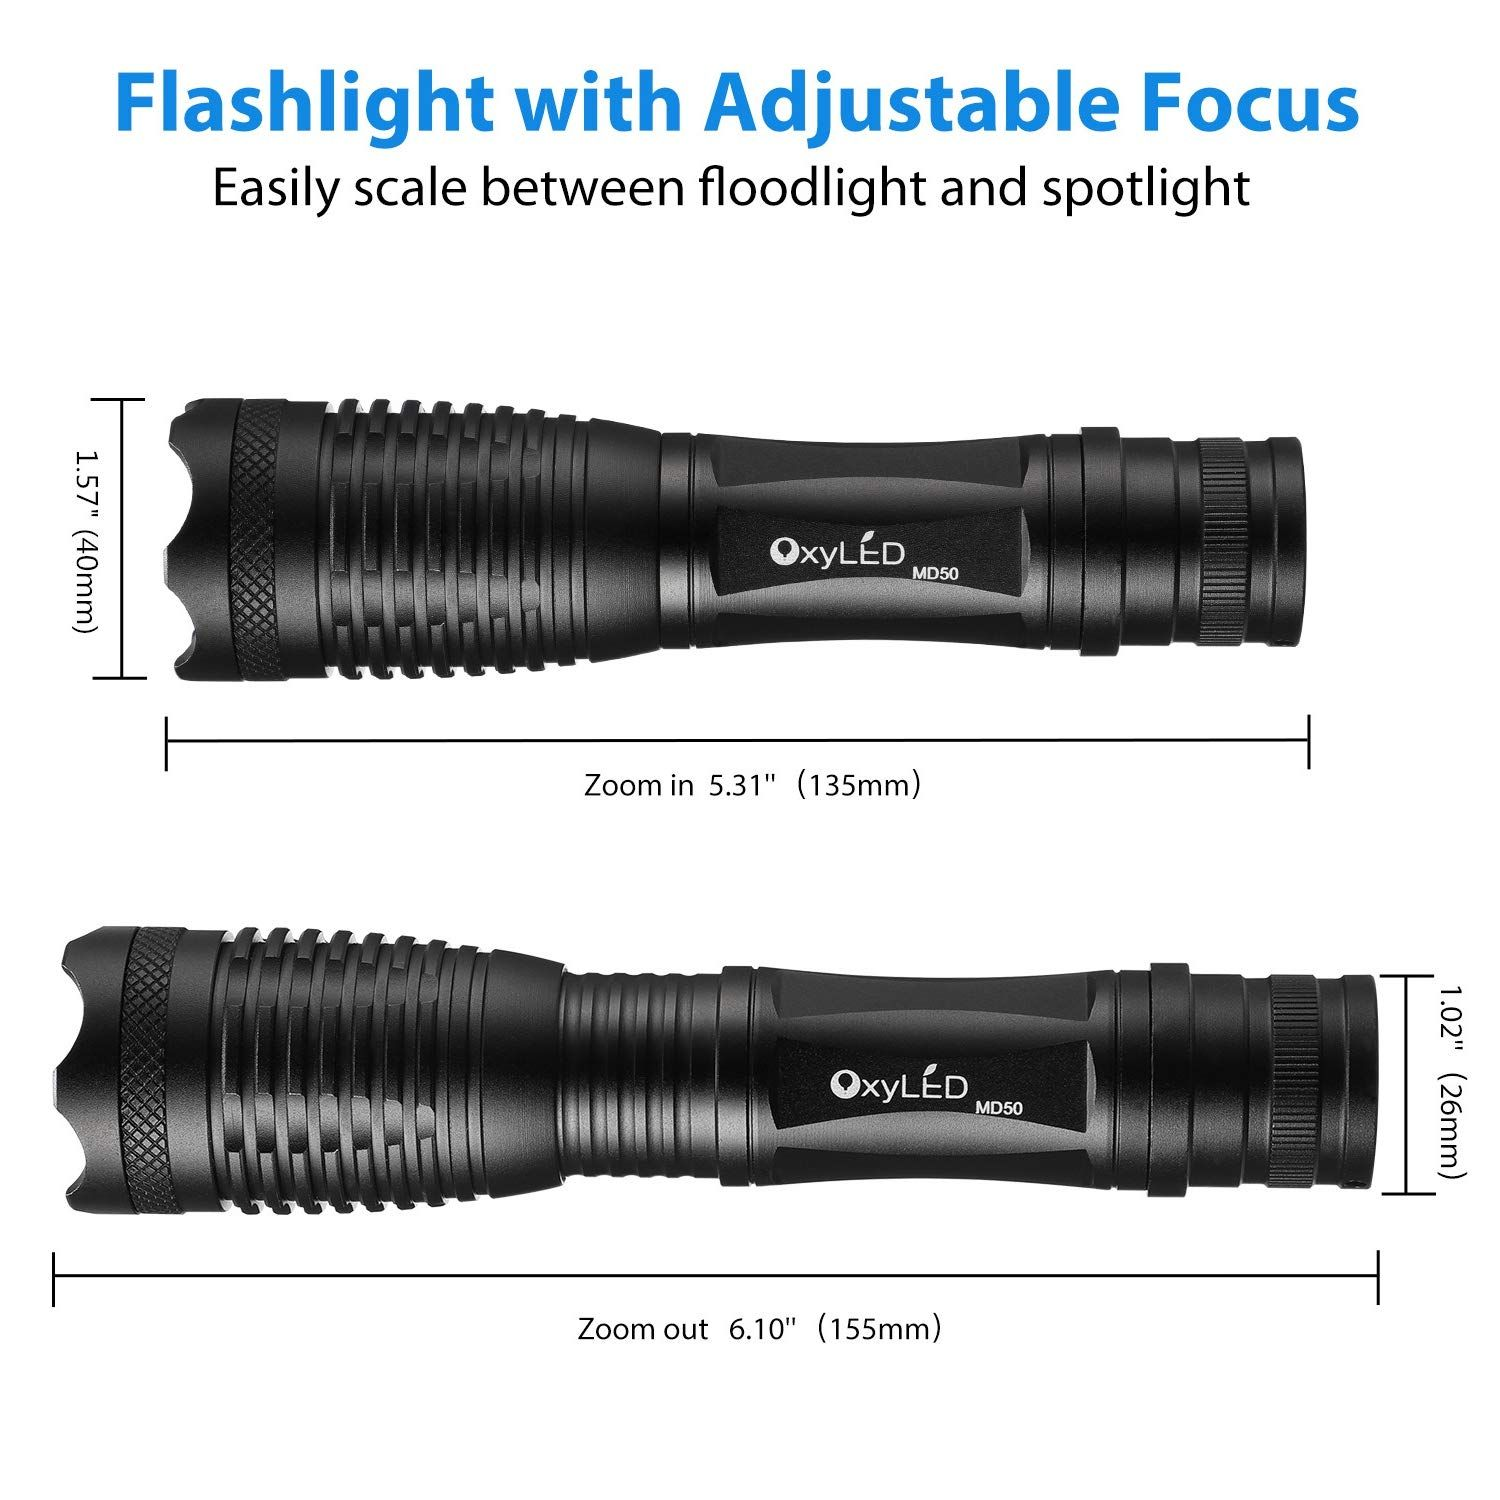 COB LED Tactical Flashlight Work Light Torch Adjustable Focus 4 Modes Zoomable